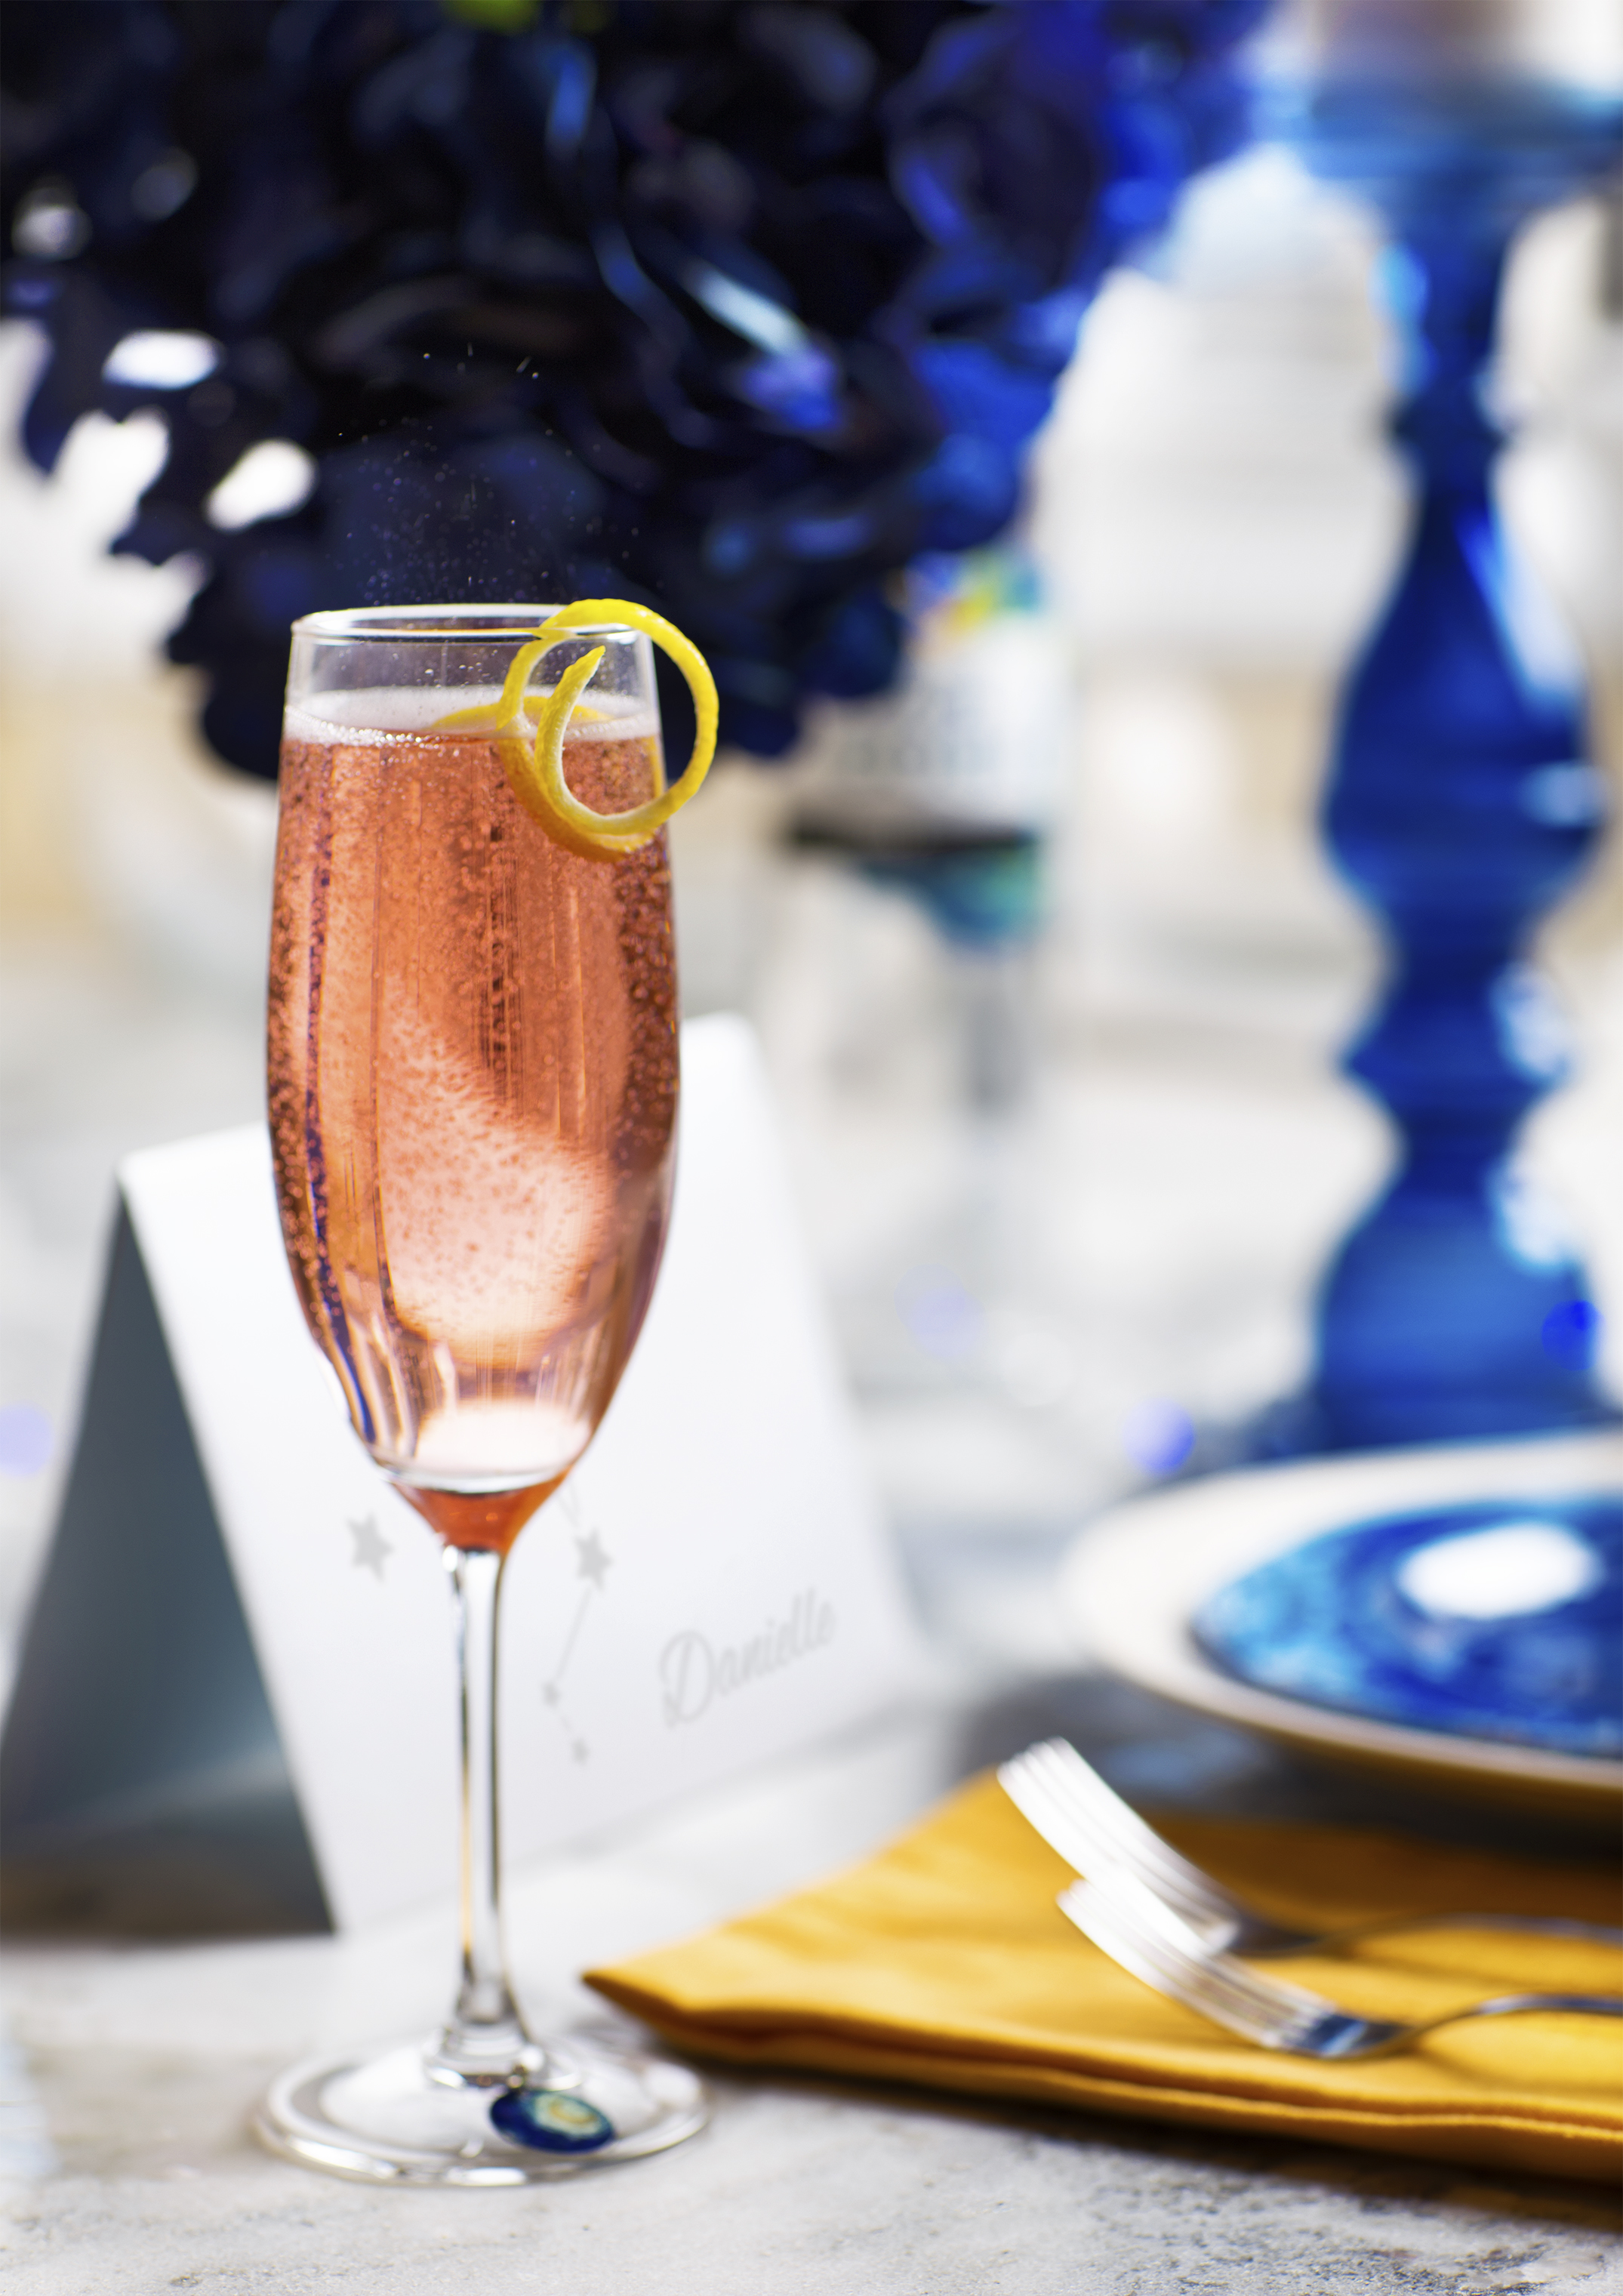 Add chilled Van Gogh Vodka to a flute and top with chilled sparkling rosé. Garnish with a starfruit. For a twist on color, try substituting Van Gogh Pomegranate or Van Gogh Açaí-Blueberry).